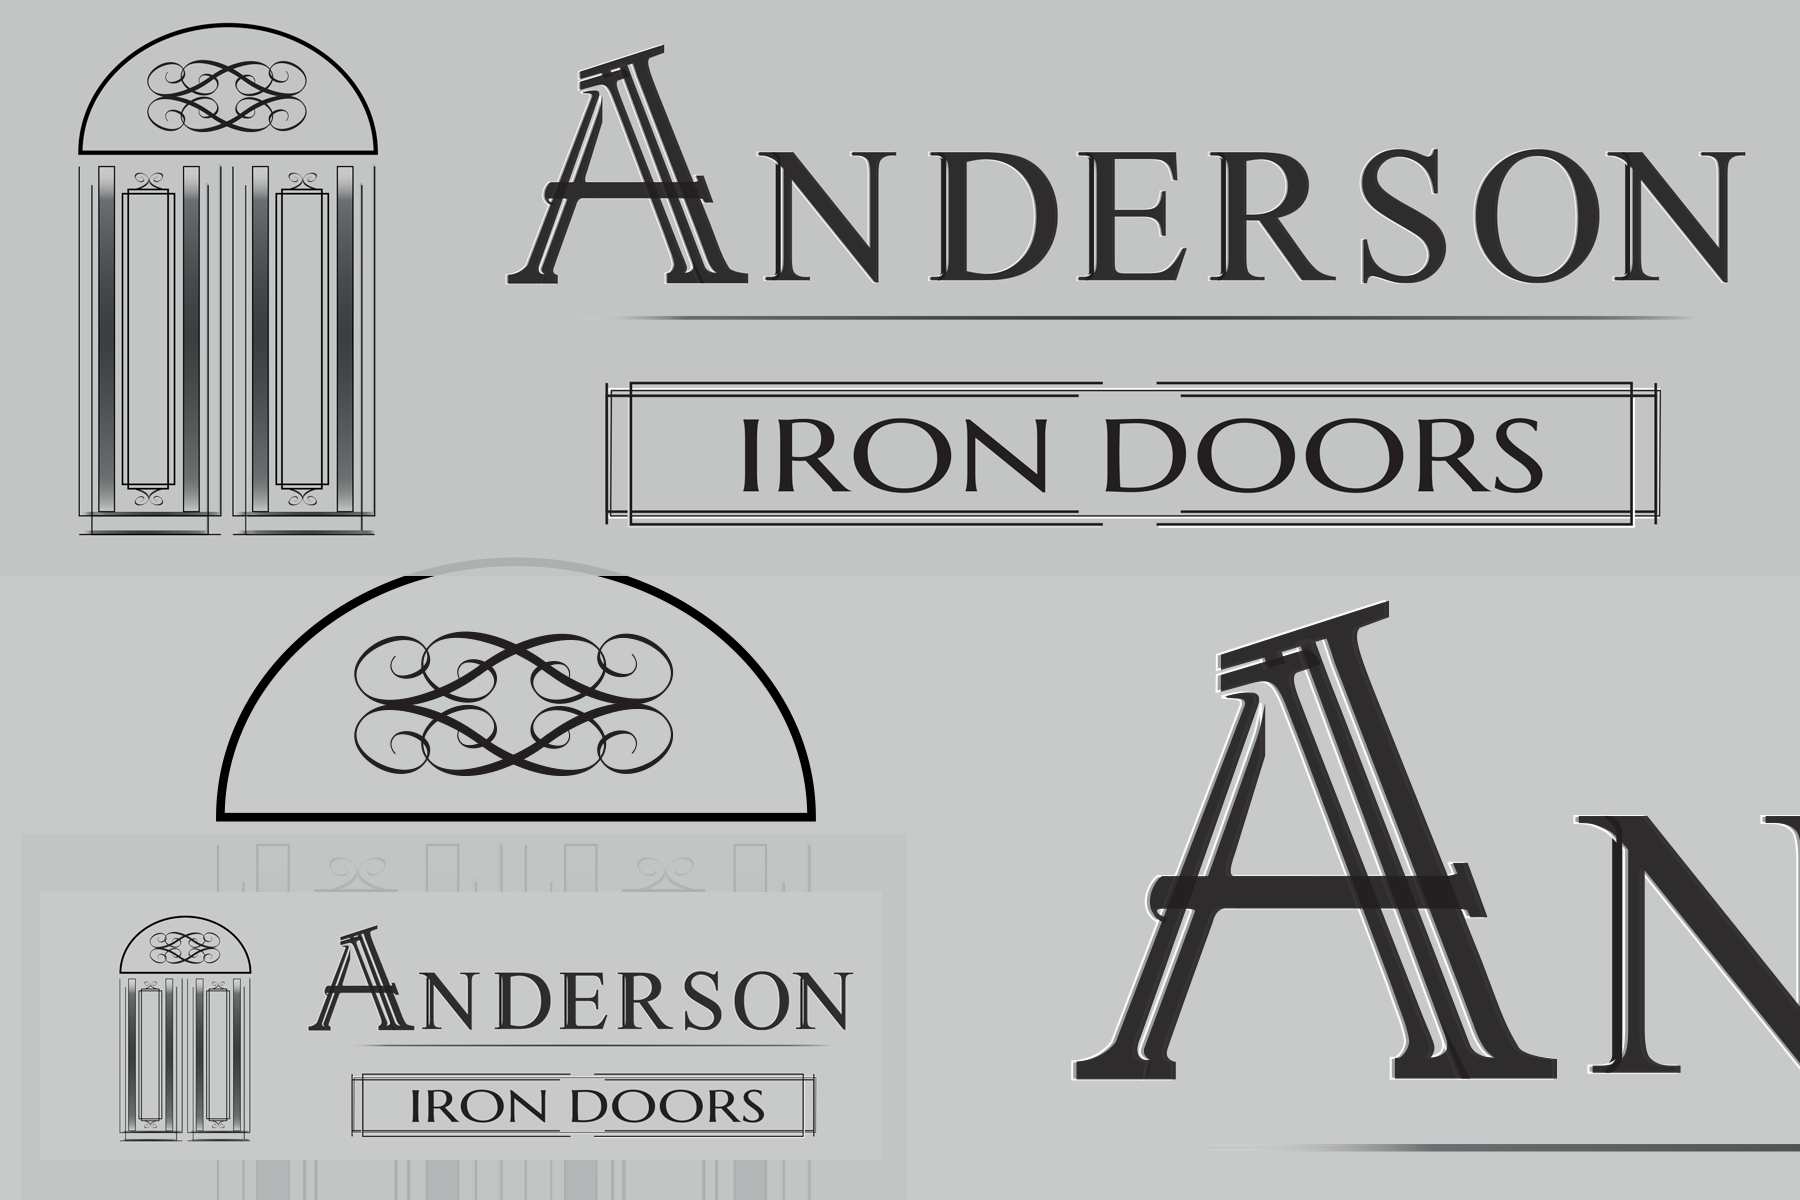 Logo Design by Rozsa Matyas - Entry No. 44 in the Logo Design Contest Artistic Logo Design for Anderson Iron Doors.